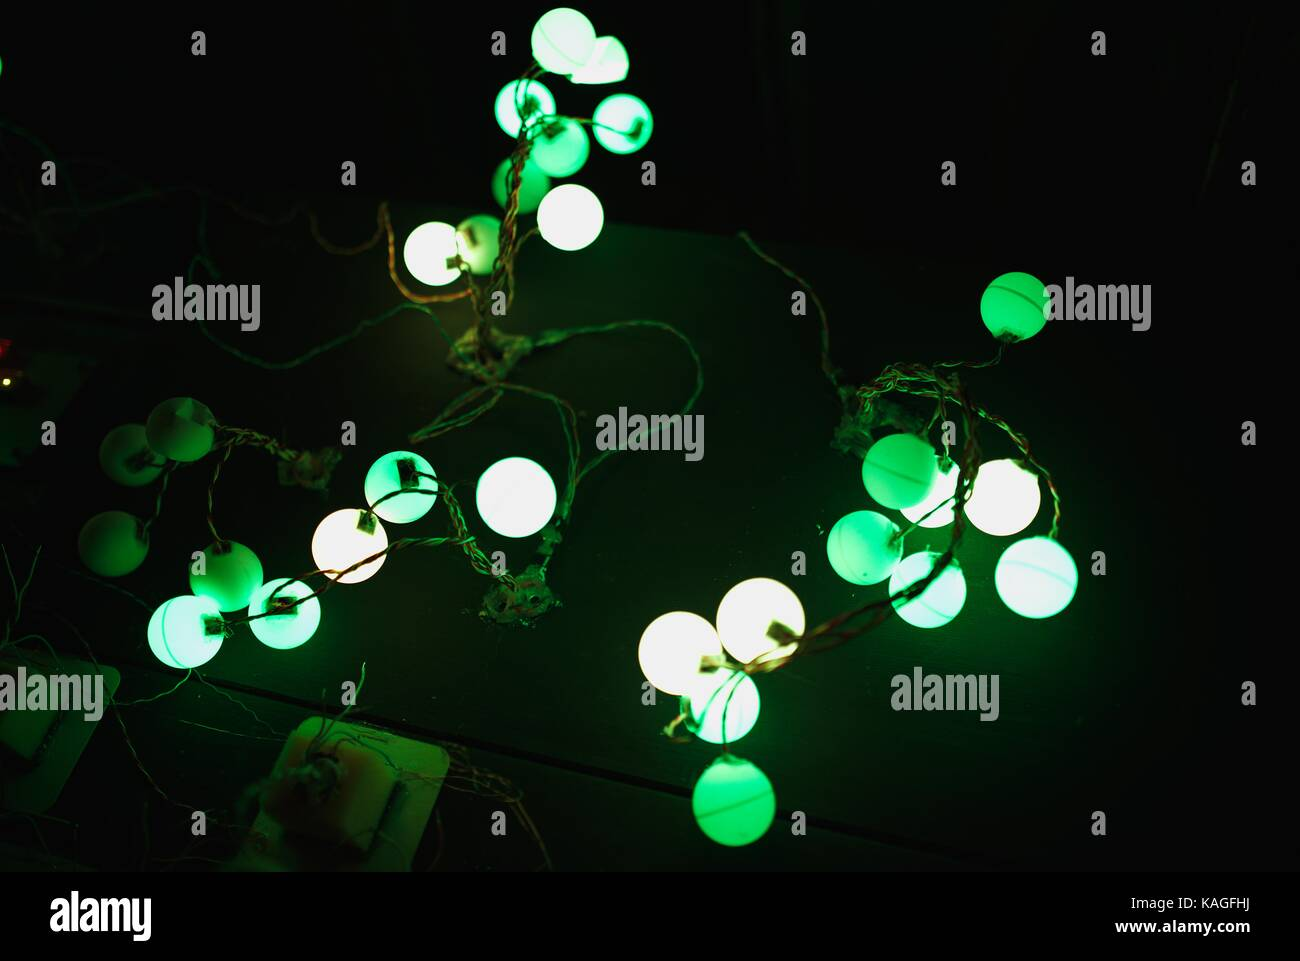 White and green shining balls, interconnected - Stock Image